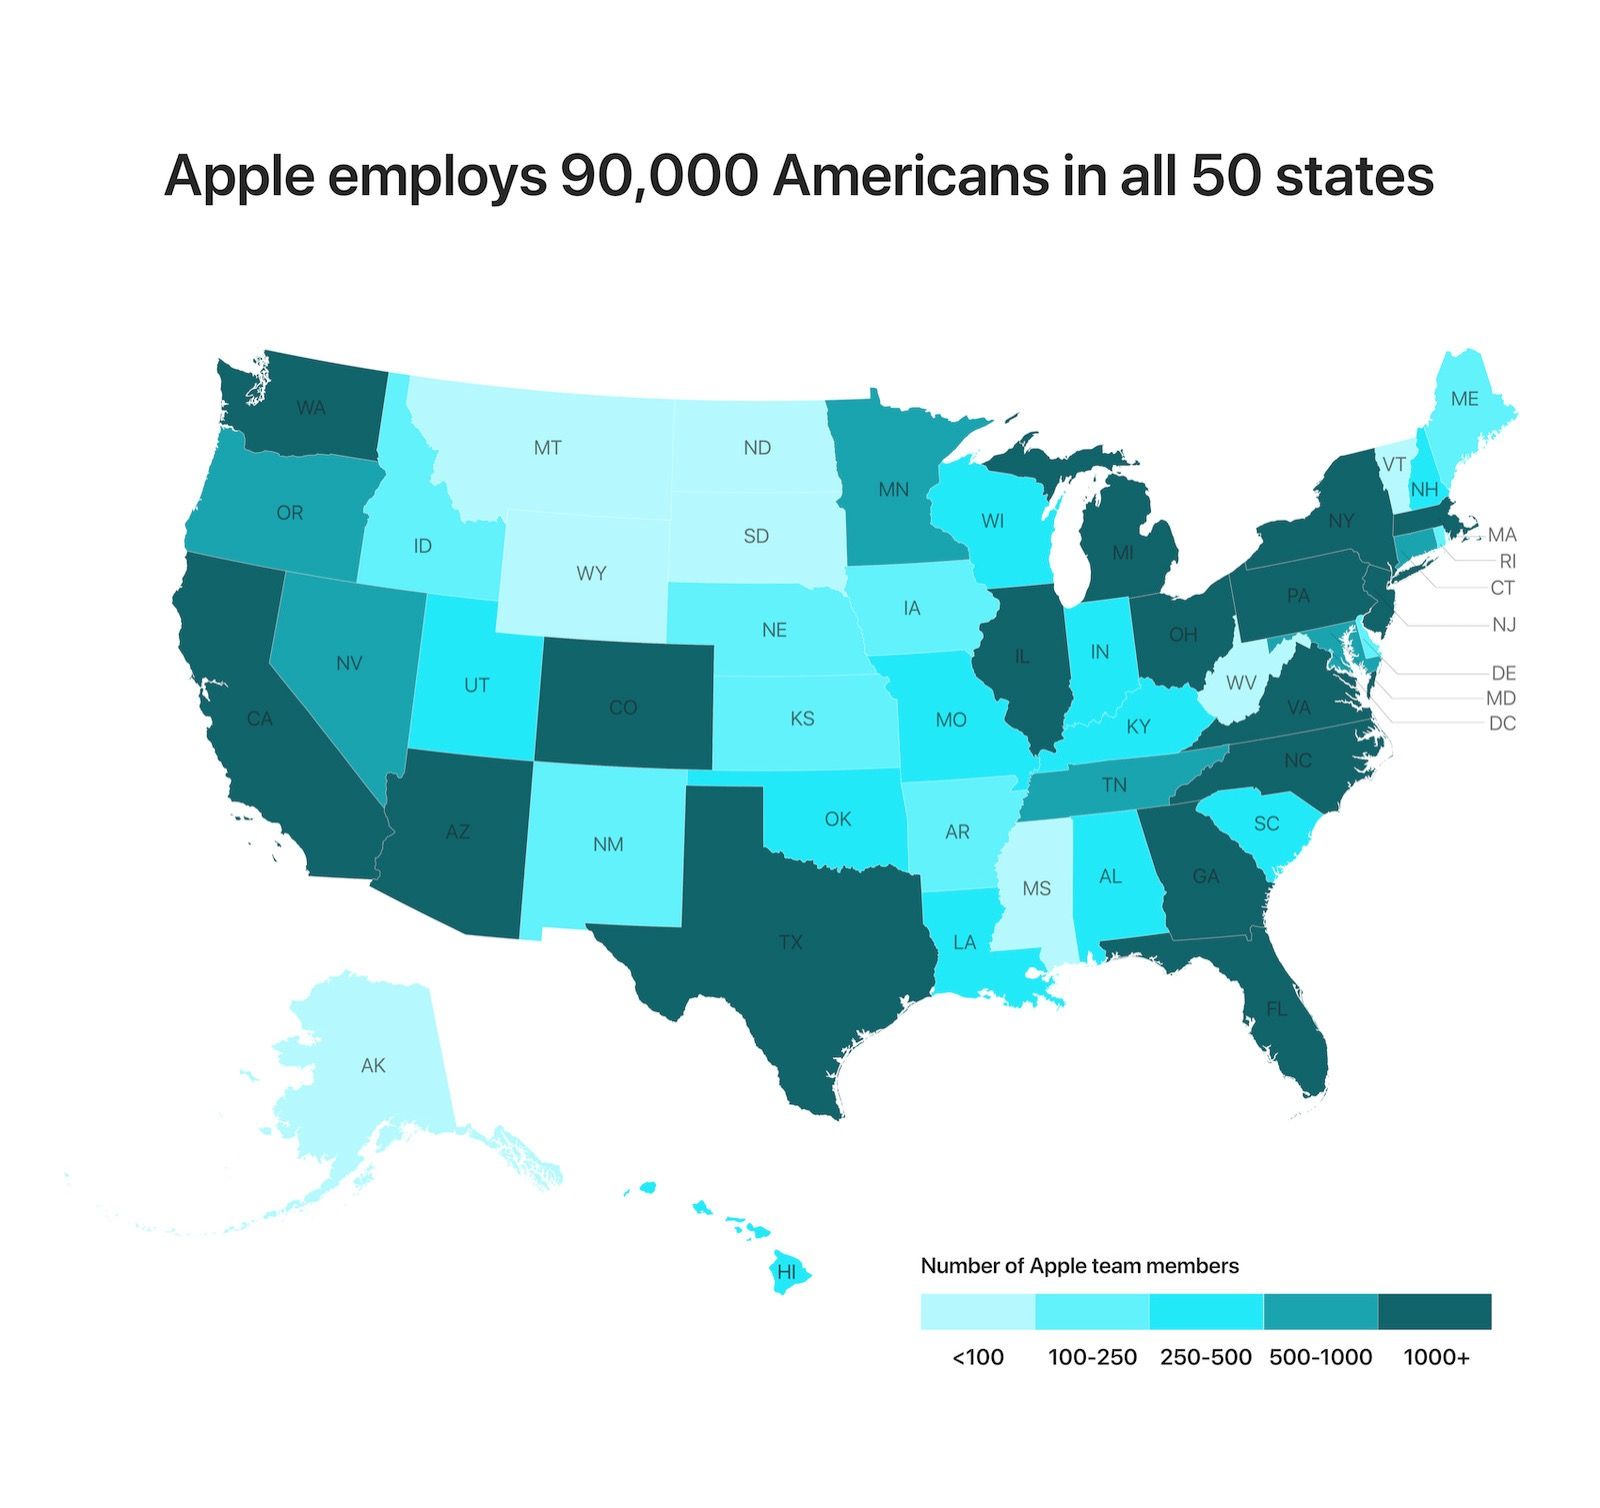 Apple-build-campus-in-Austin-and-in-US-Apple-employs-12132018.jpg